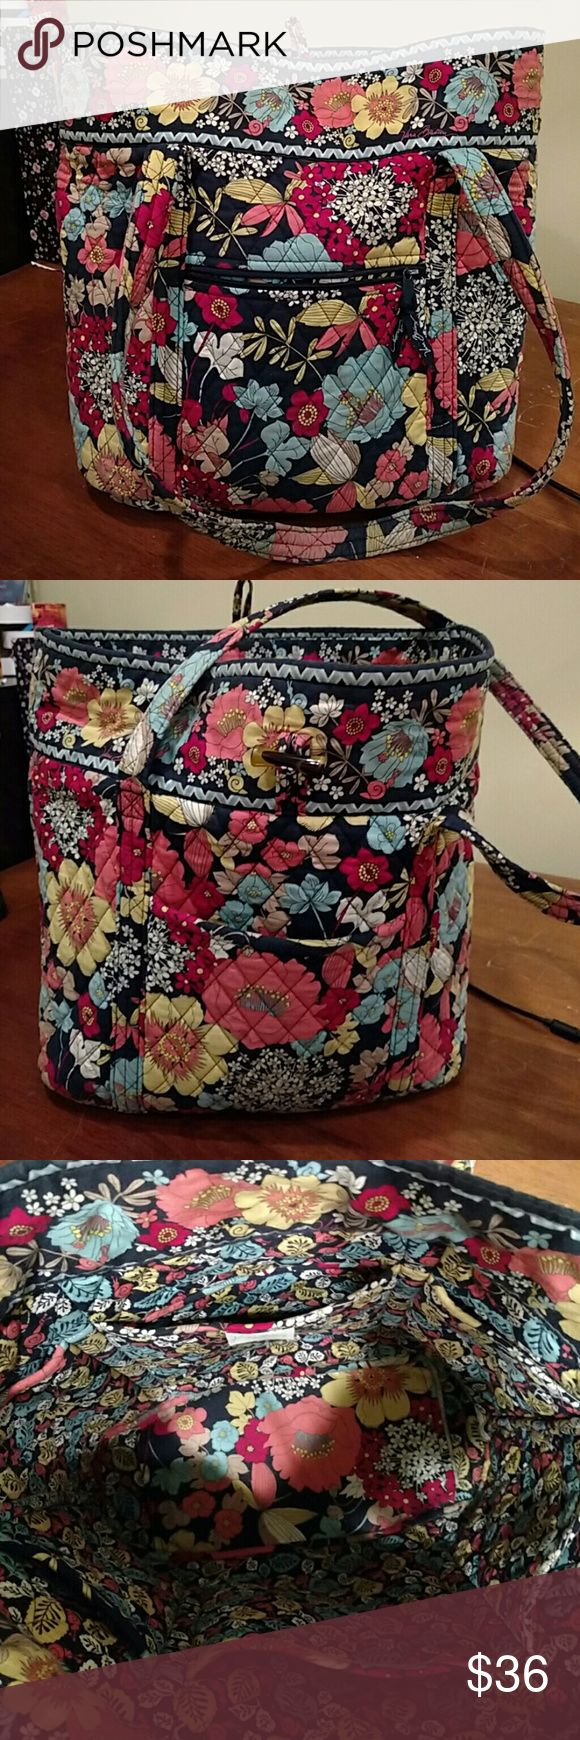 """Vera Bradley tote Vera Bradley tote bag, Happy Snails pattern, about 14"""" tall by 16""""wide, shoulder straps 16"""". Has 6 interior pockets for organization and flexibility and two exterior pockets. Vera Bradley Bags Totes"""